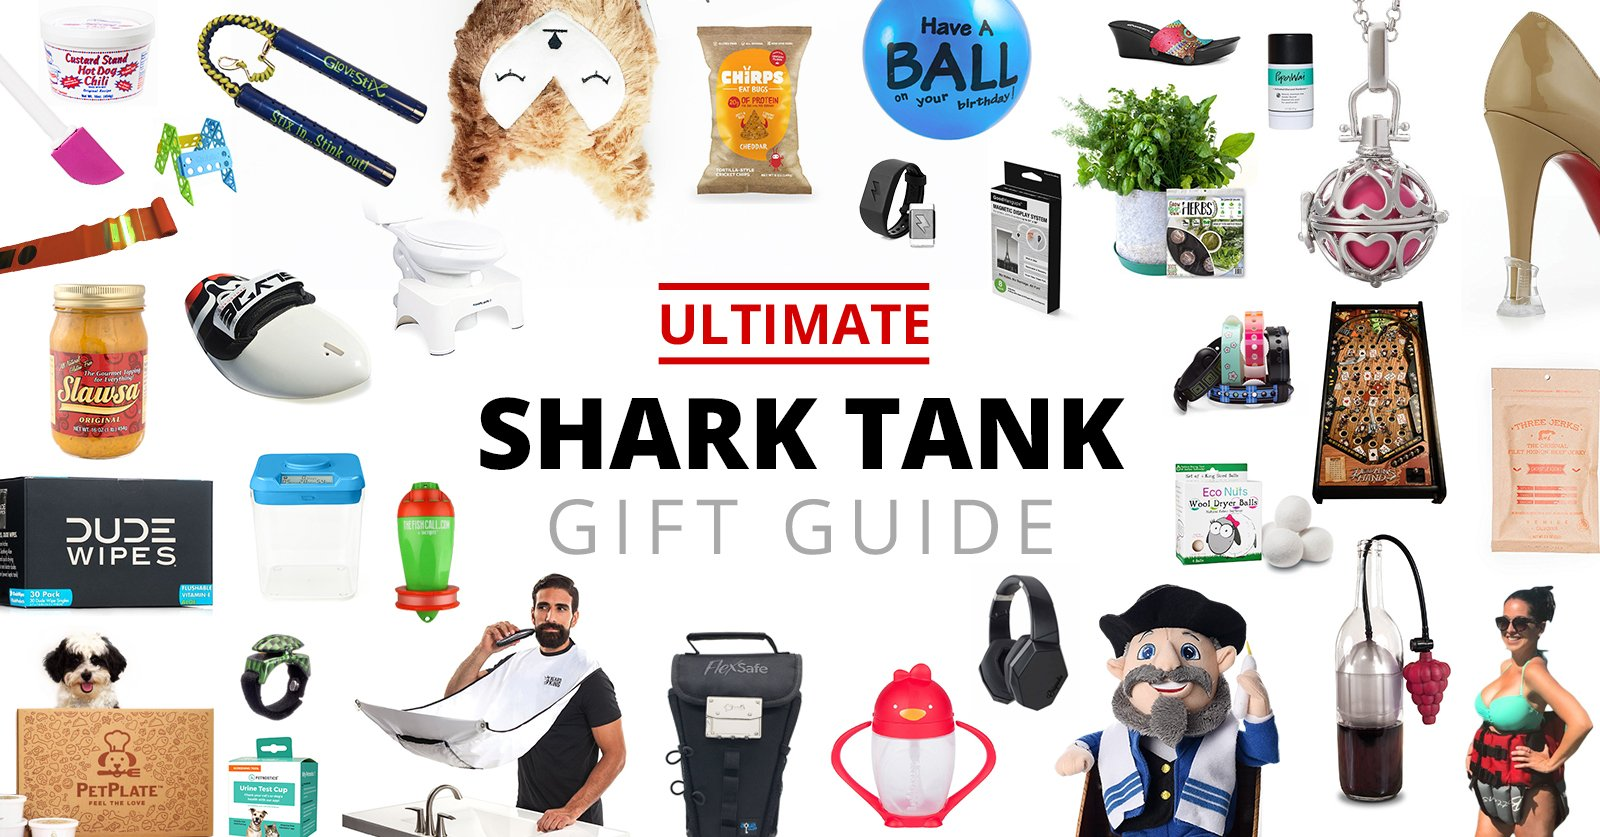 BEARD_KING_Ultimate_Shark_Tank_Holiday_Gift_Guide_01.jpg